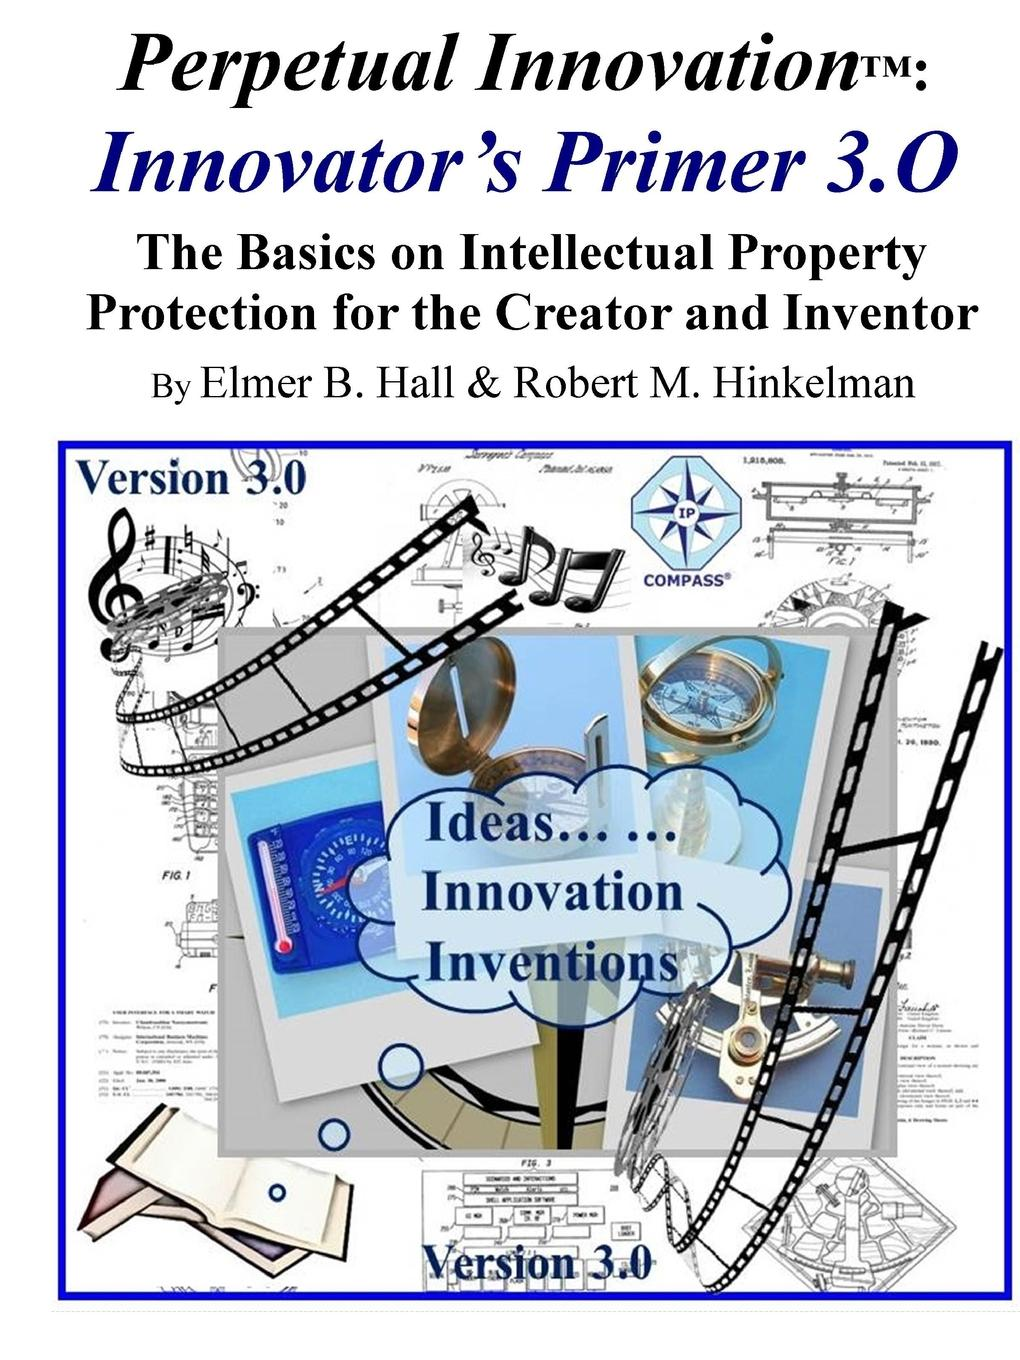 Perpetual Innovation. Innovator.s Primer 3.O: The Basics on Intellectual Property Protection for the Creator and Inventor Innovator's Primer 3.0 is an overview of Intellectual Property...